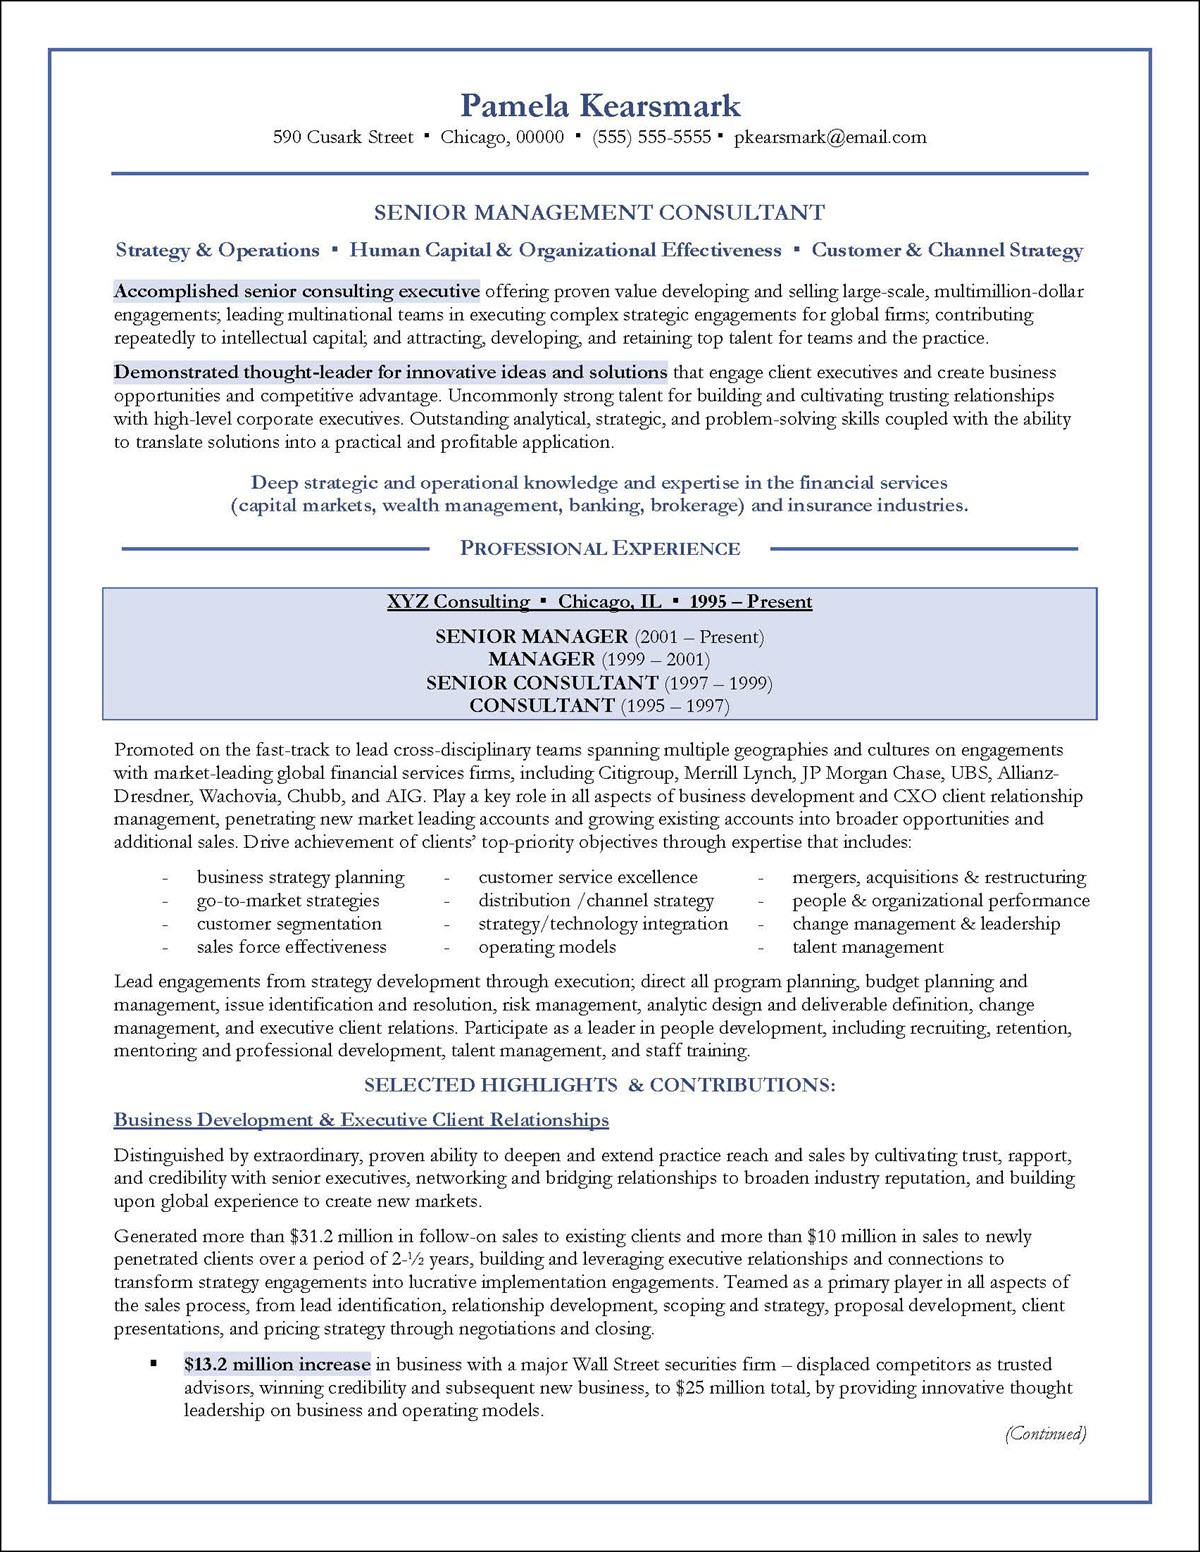 resume Resume Management Consultant management consulting resume example for executive page 1